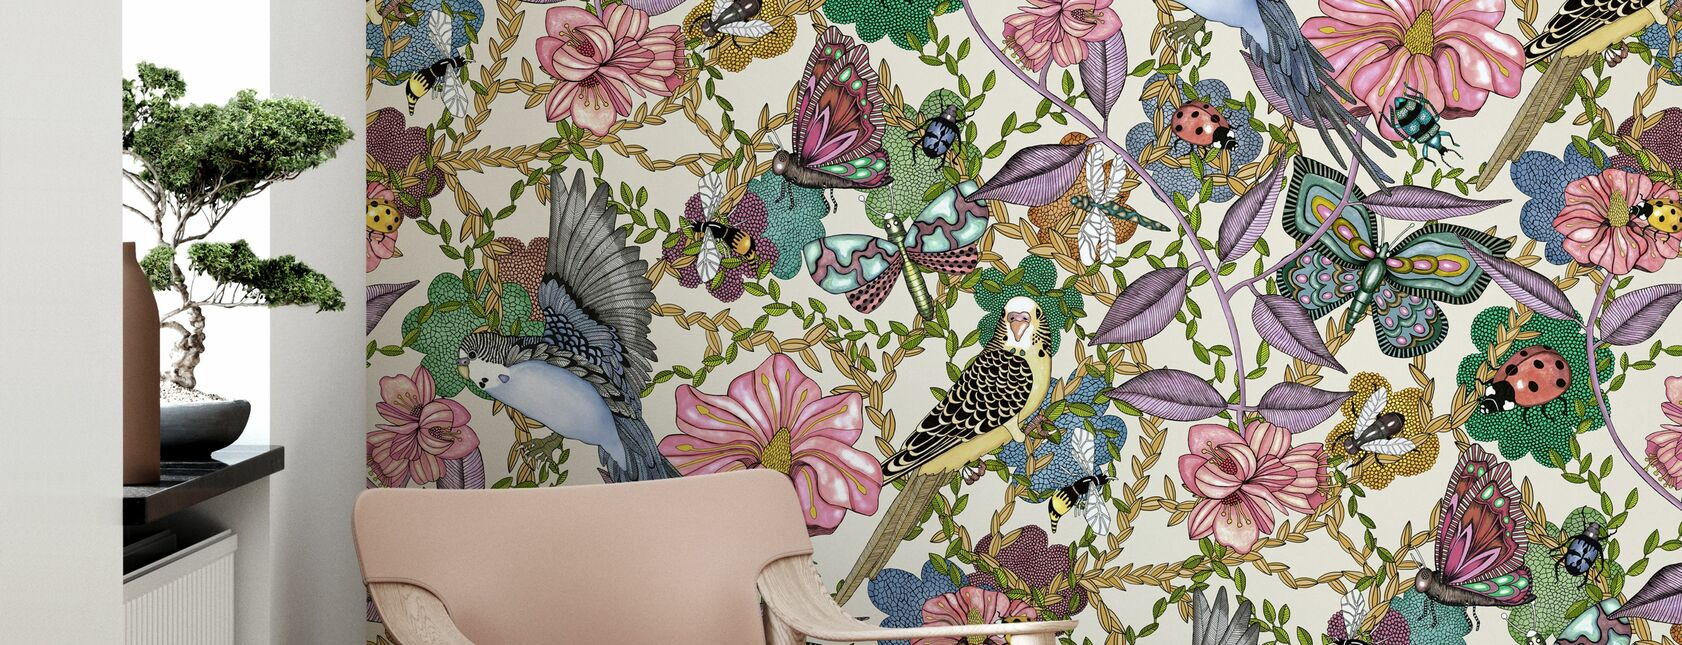 Budgies Offwhite - Large - Wallpaper - Living Room